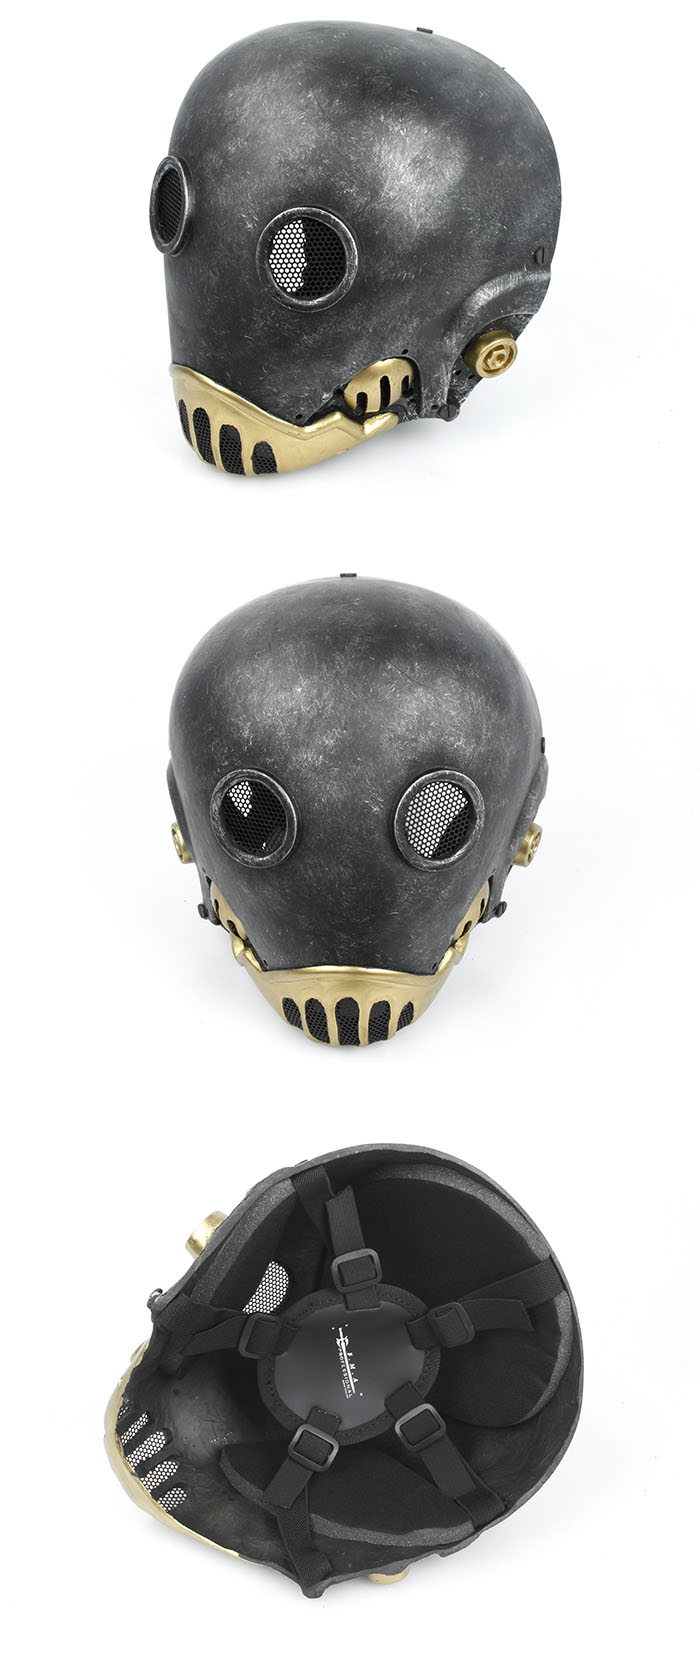 Masques ebairsoft FMA%20Wire%20Mesh%20Hell%20jazz%20Mask%20tb649%20a